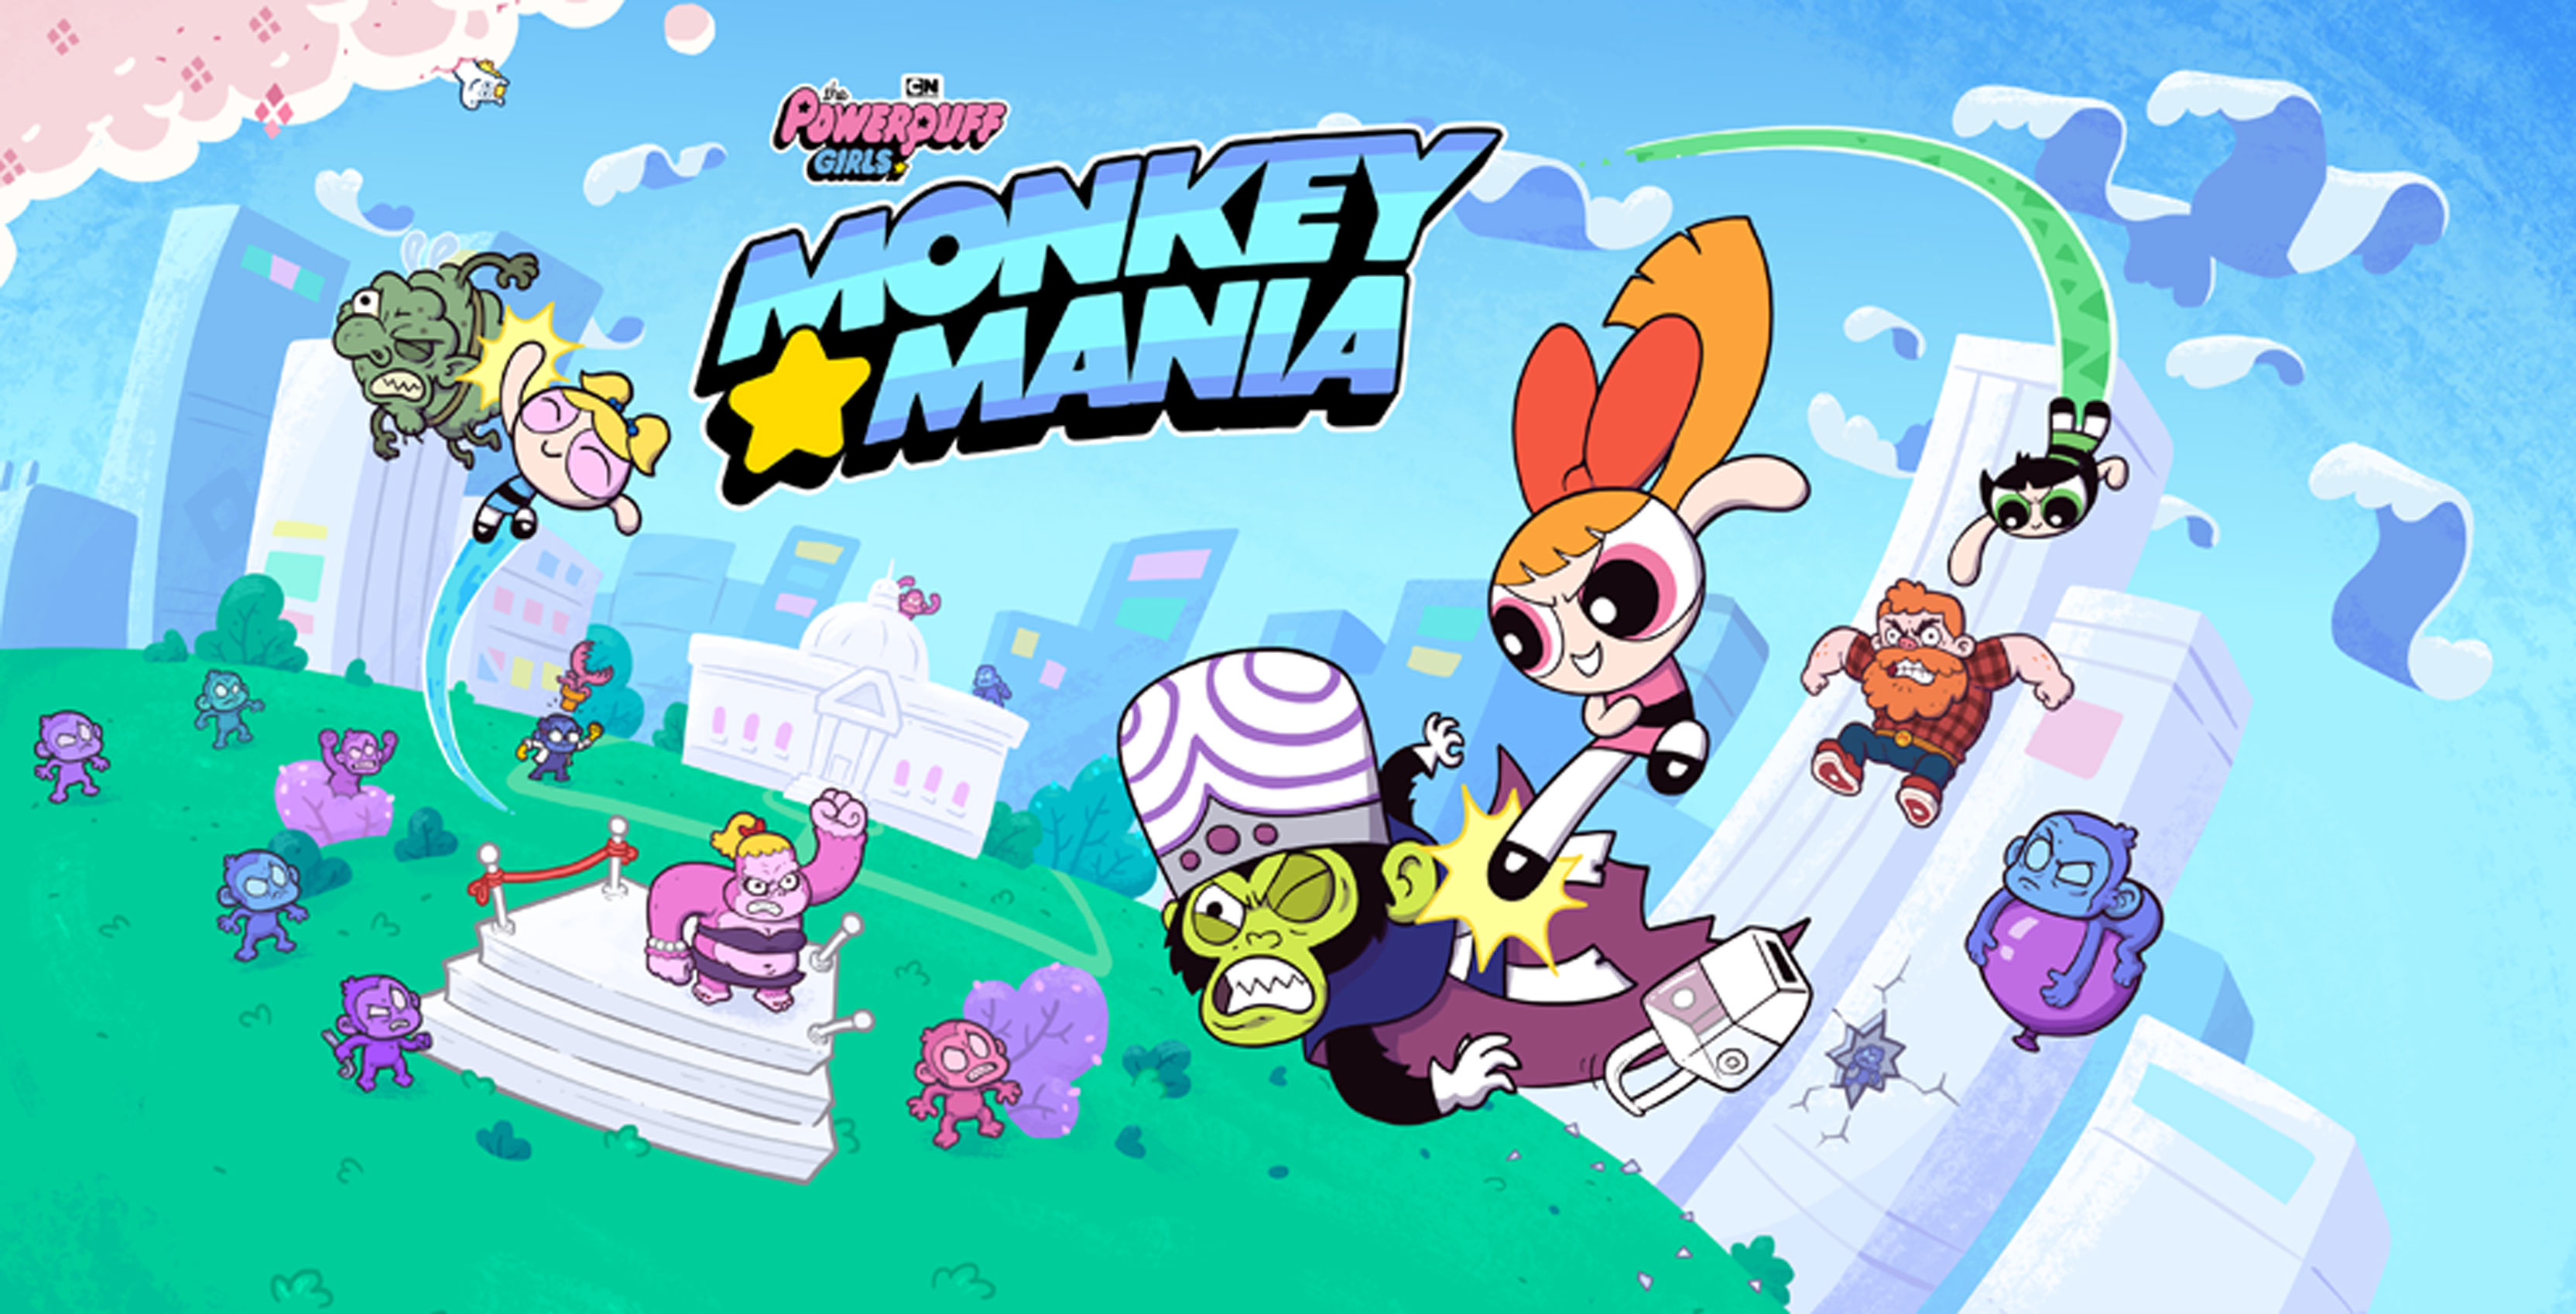 e2c1f11ad59 Publishing company Kongregate is partnering with Cartoon Network and game  developer Juicy Beast to launch mobile game The Powerpuff Girls: Monkey  Mania.